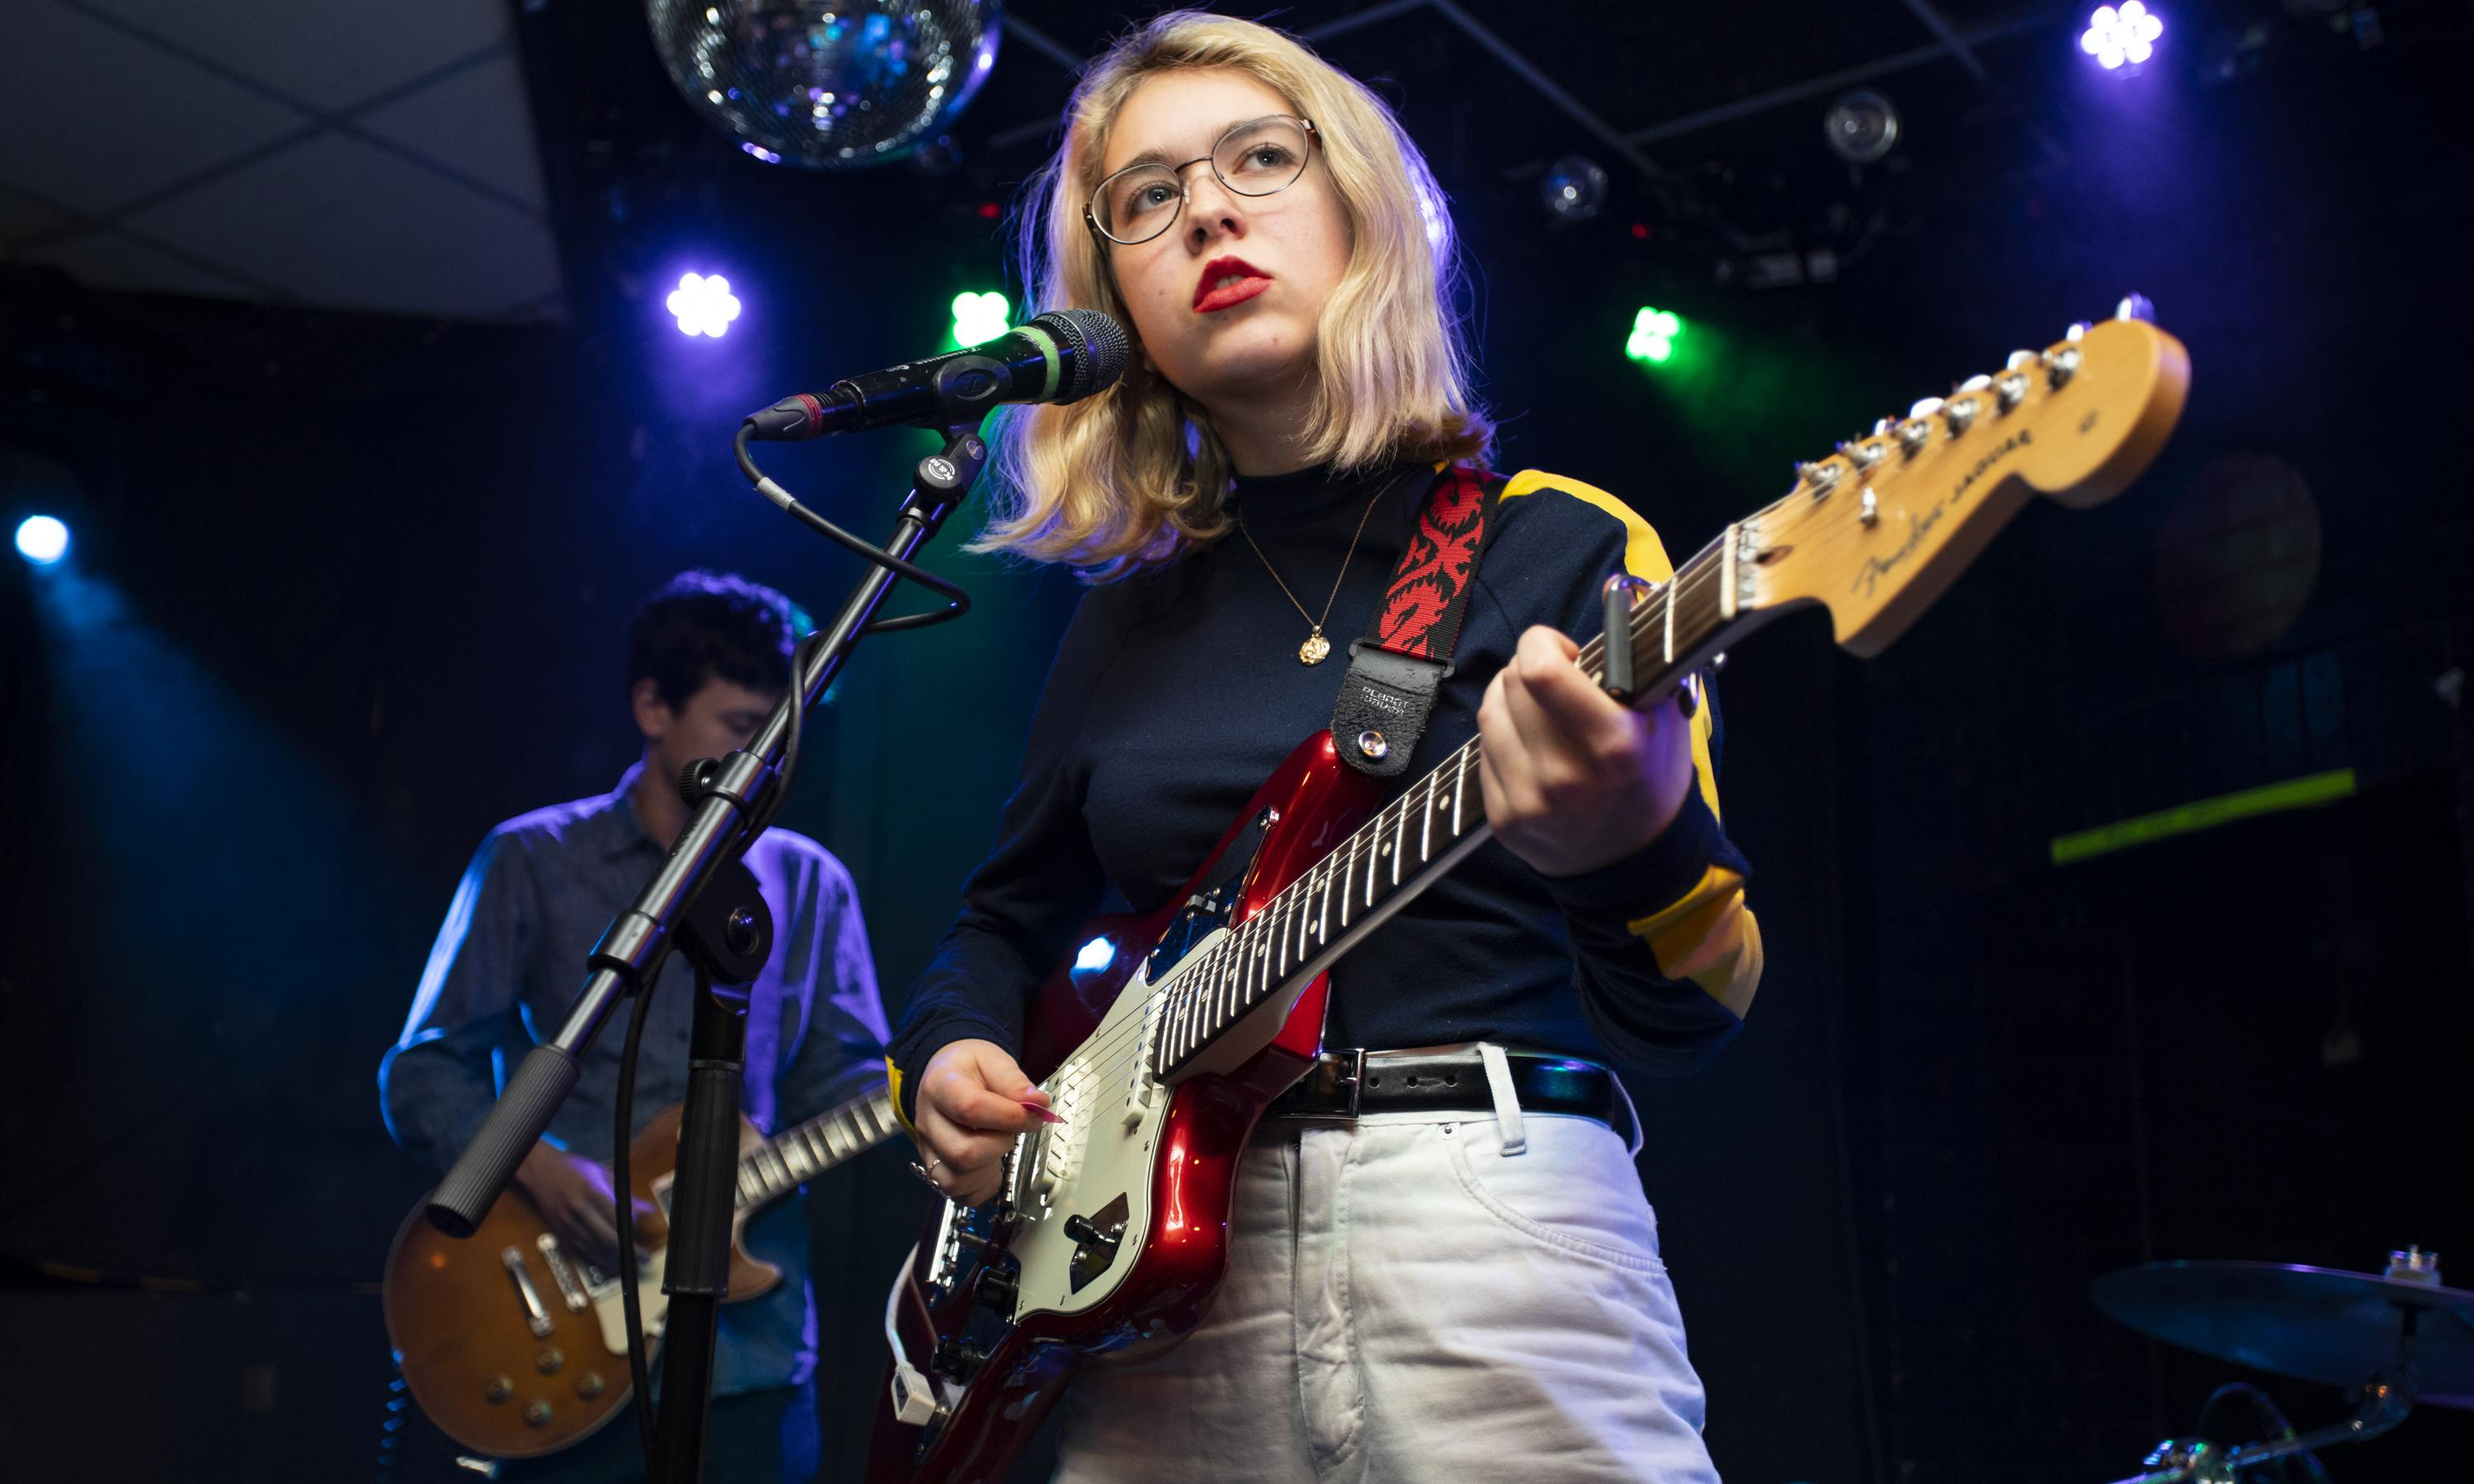 Small music venues to get 50% reduction in business rates